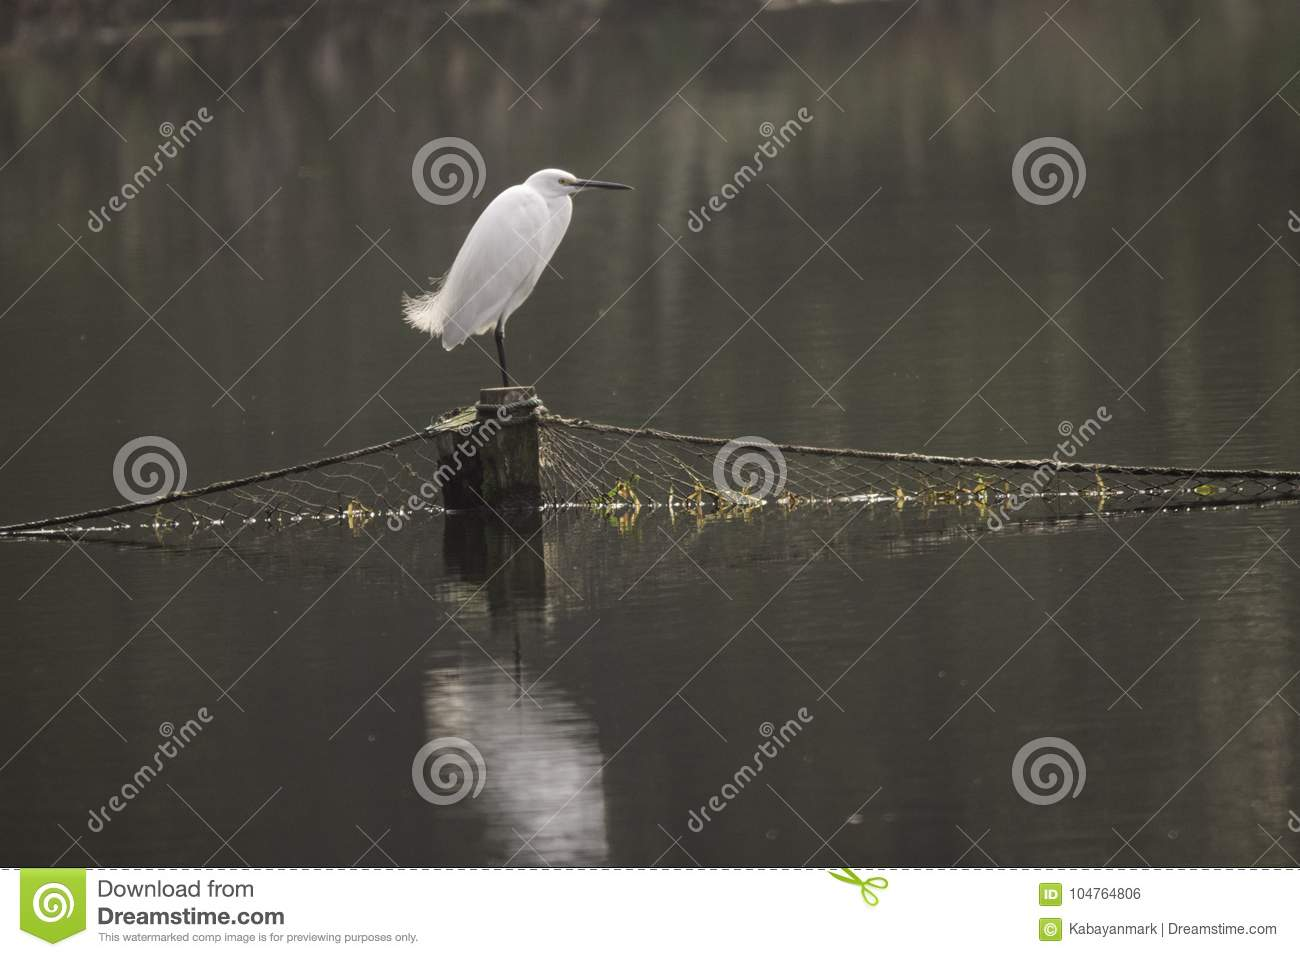 Chinese white crane bjrd standing on post with fishing net across lake, day